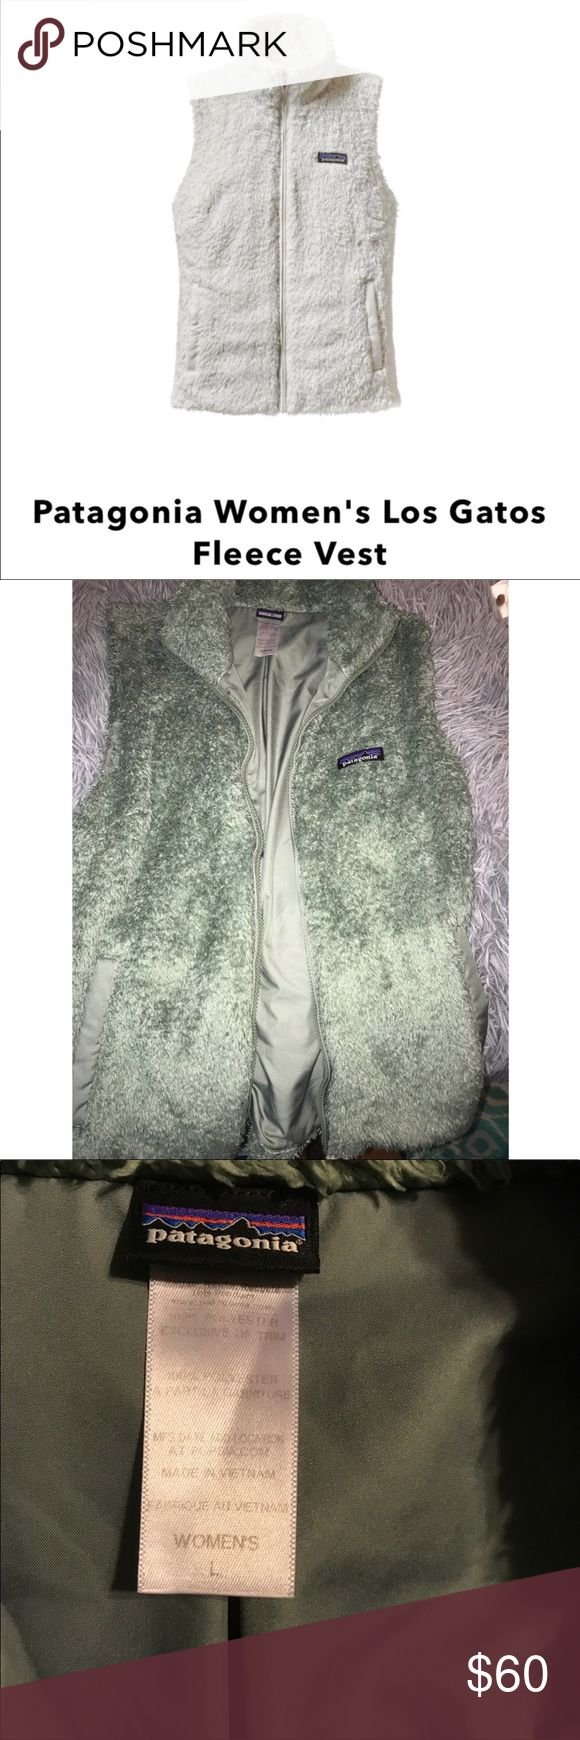 Patagonia Fleece Vest No holes or stains, in good shape Patagonia fleece vest in a pretty mint color. Patagonia Jackets & Coats Vests